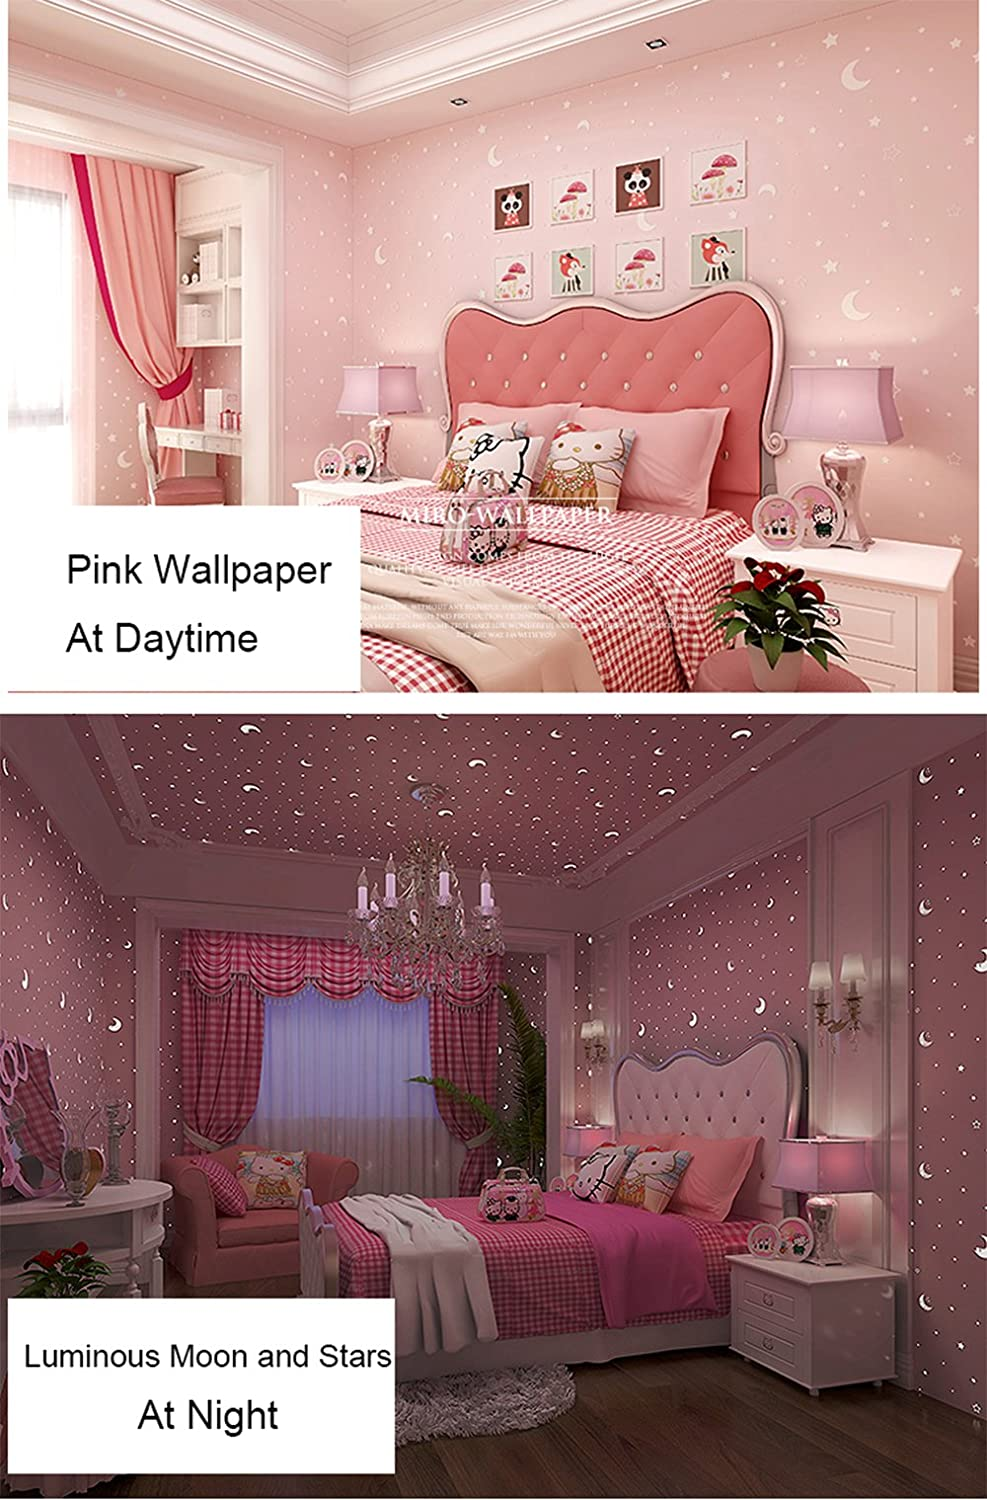 Glow in the Dark Kids Pattern Contact Paper Self Adhesive Non Woven Wallpaper for Girls Bedroom Christmas Home Wall Decor Sticker (Pink, 20.83 Inches By 9.8 Feet) MagicValley GL001